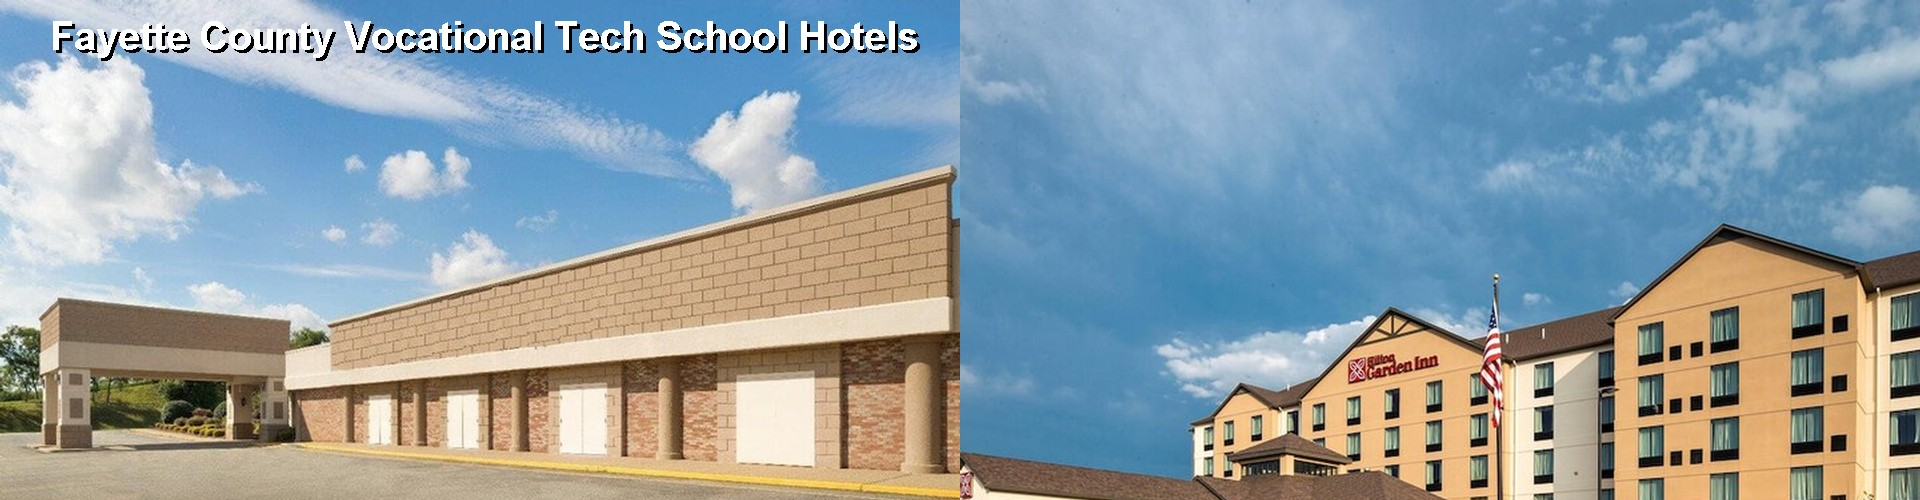 43 Hotels Near Fayette County Vocational Tech School In Uniontown Pa